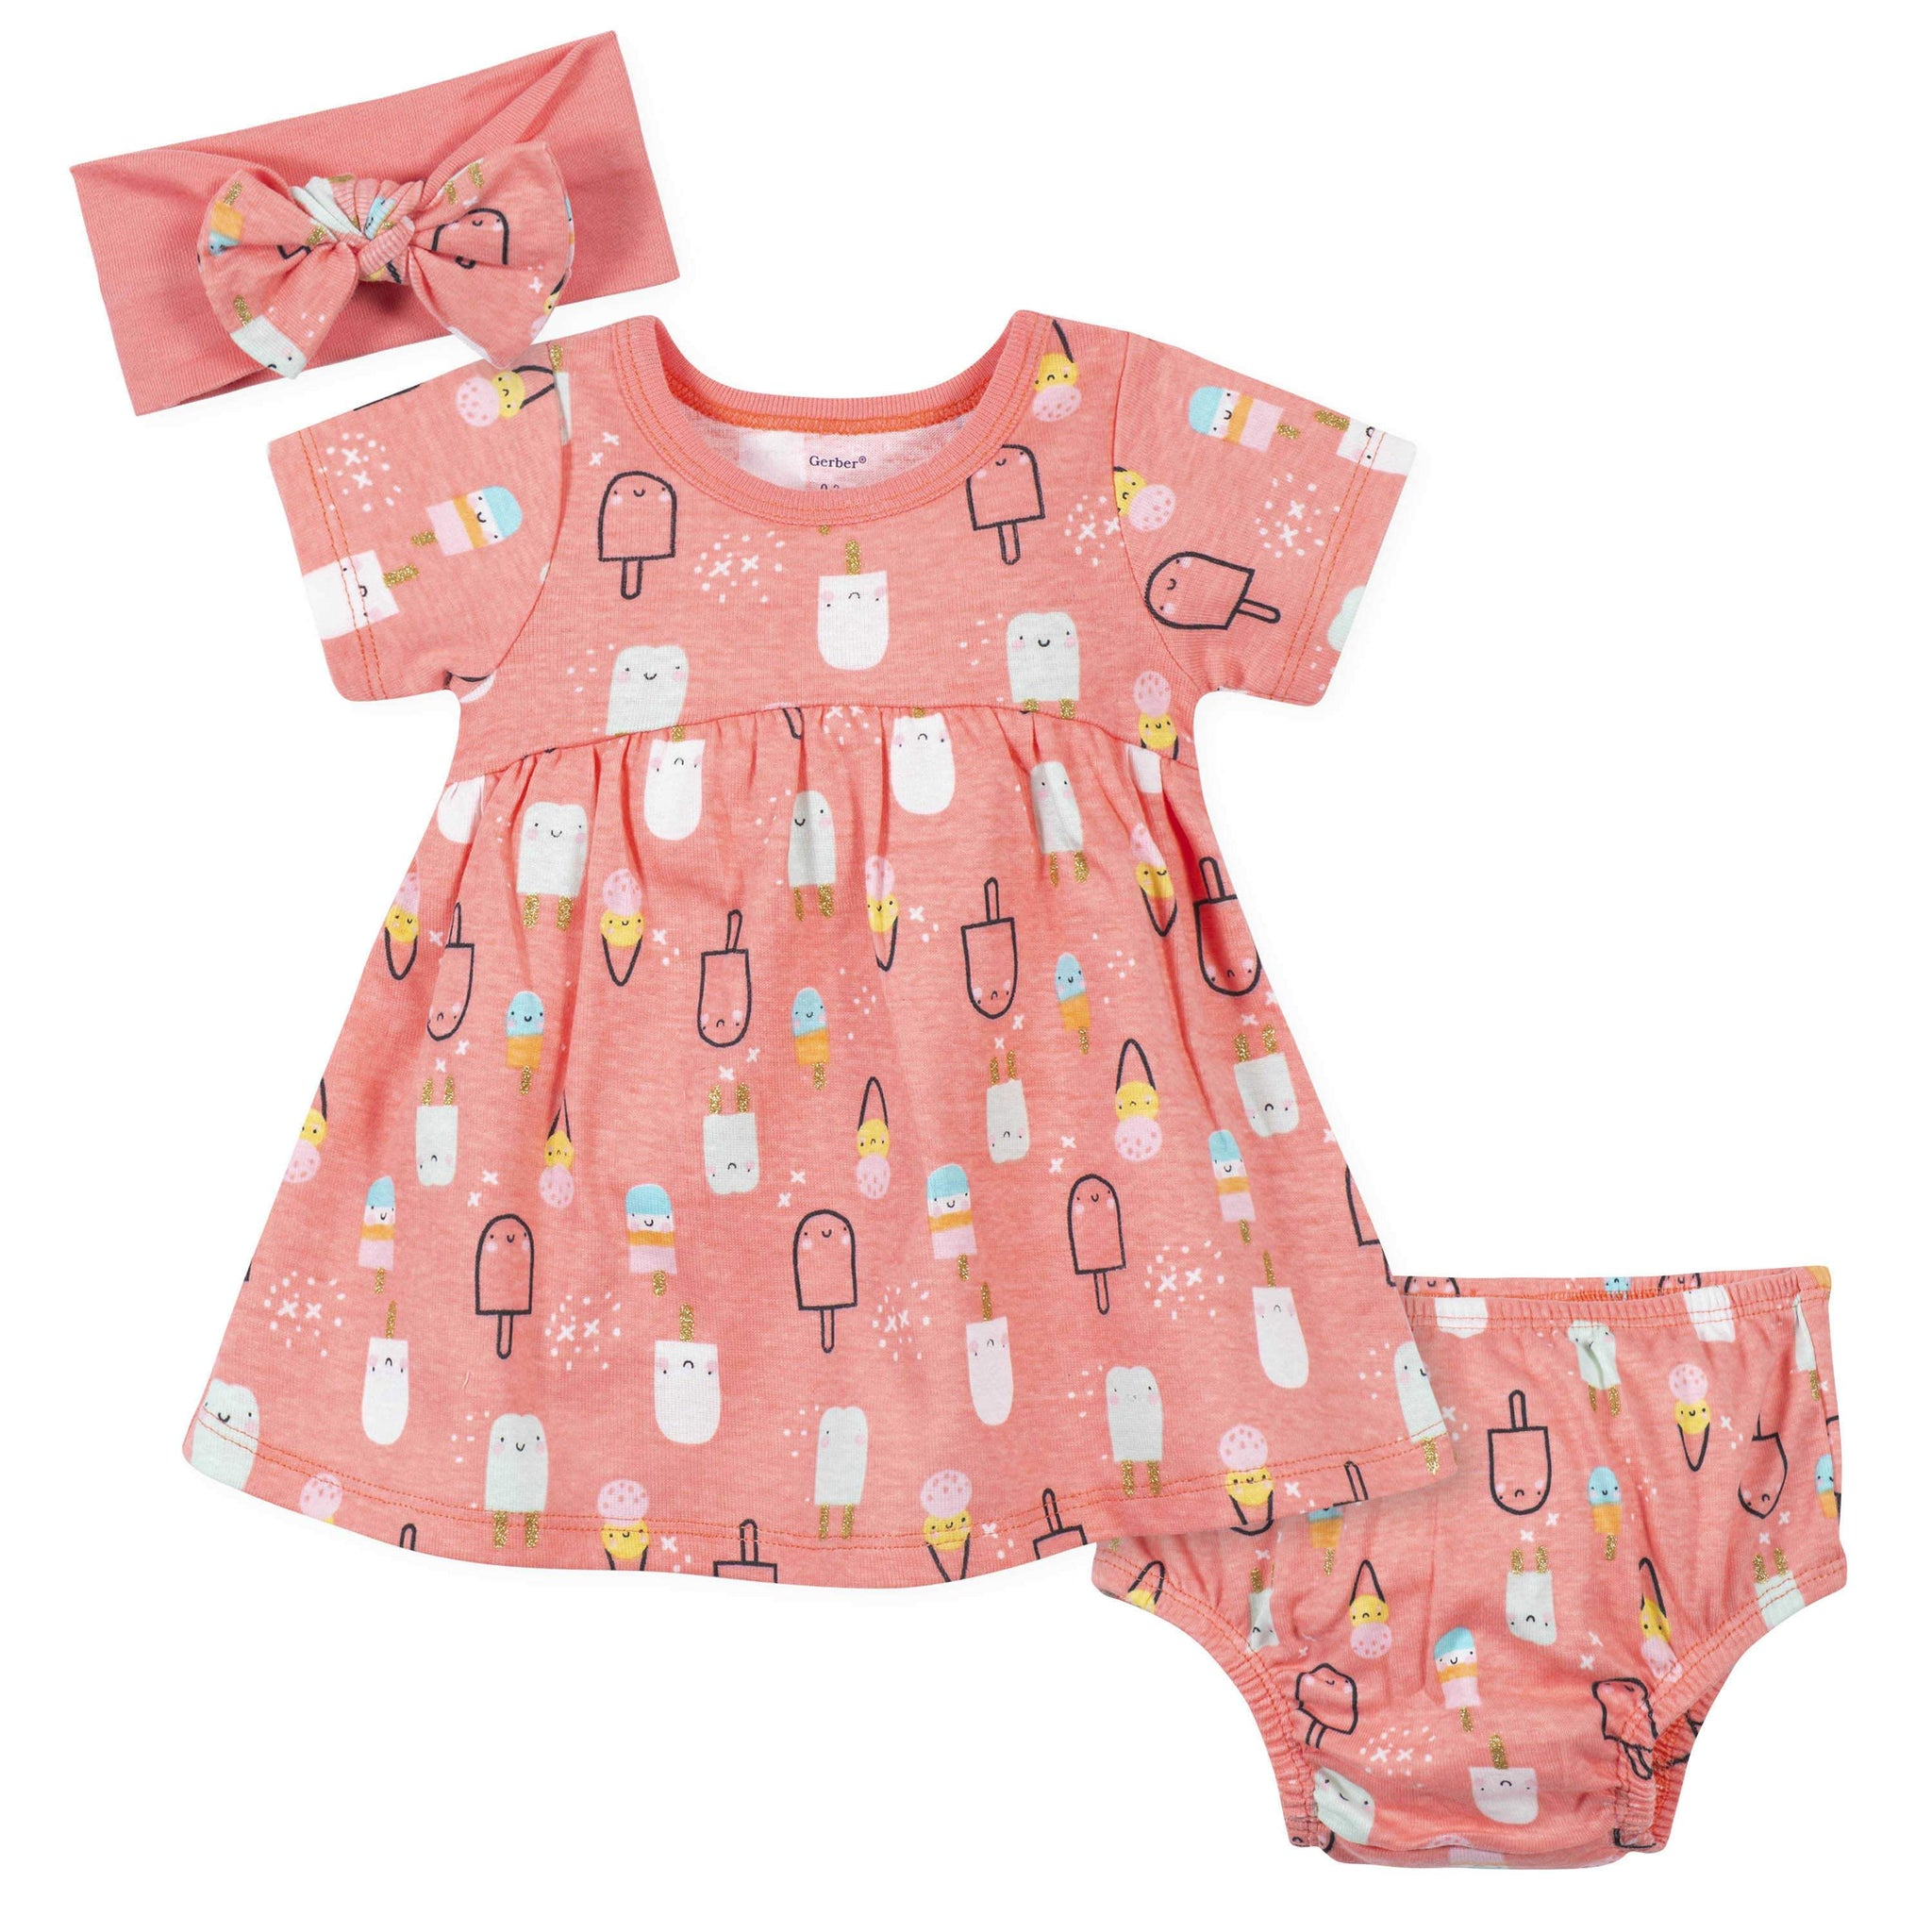 3-Piece Baby Girls Popsicles Dress, Diaper Cover, and Headband Set